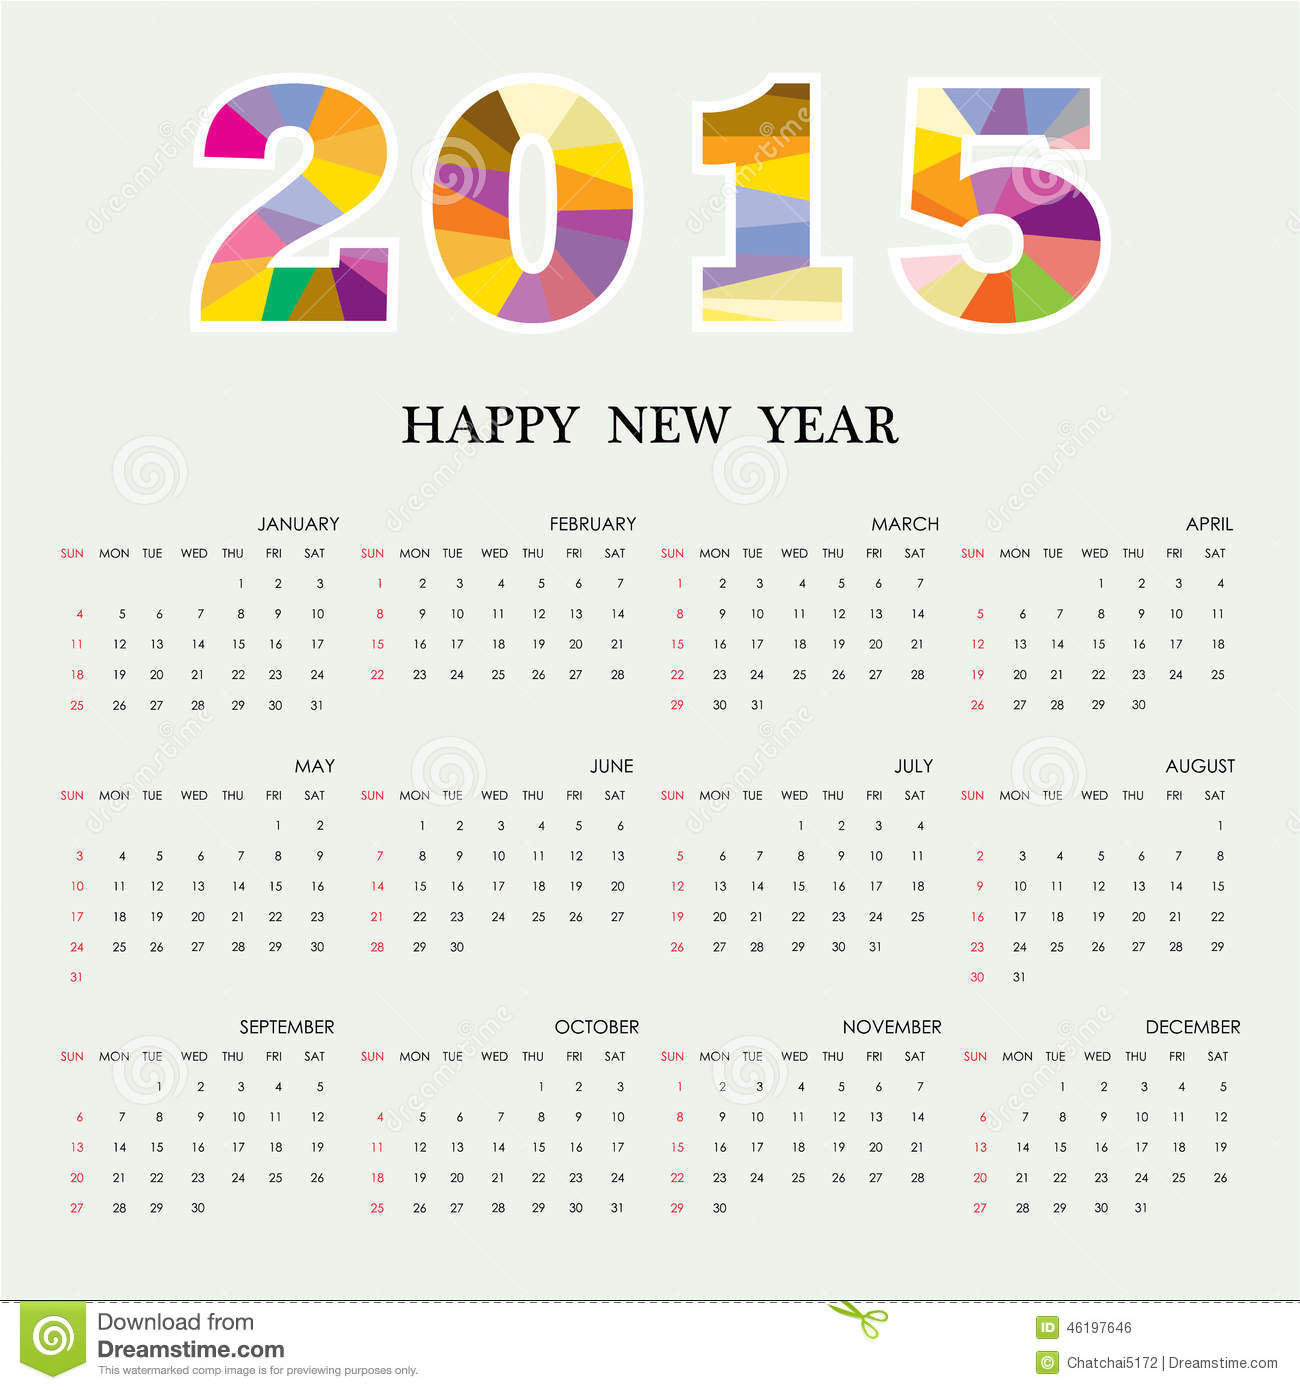 Illustration Calendar Design : Calendar design template week starts sunday stock